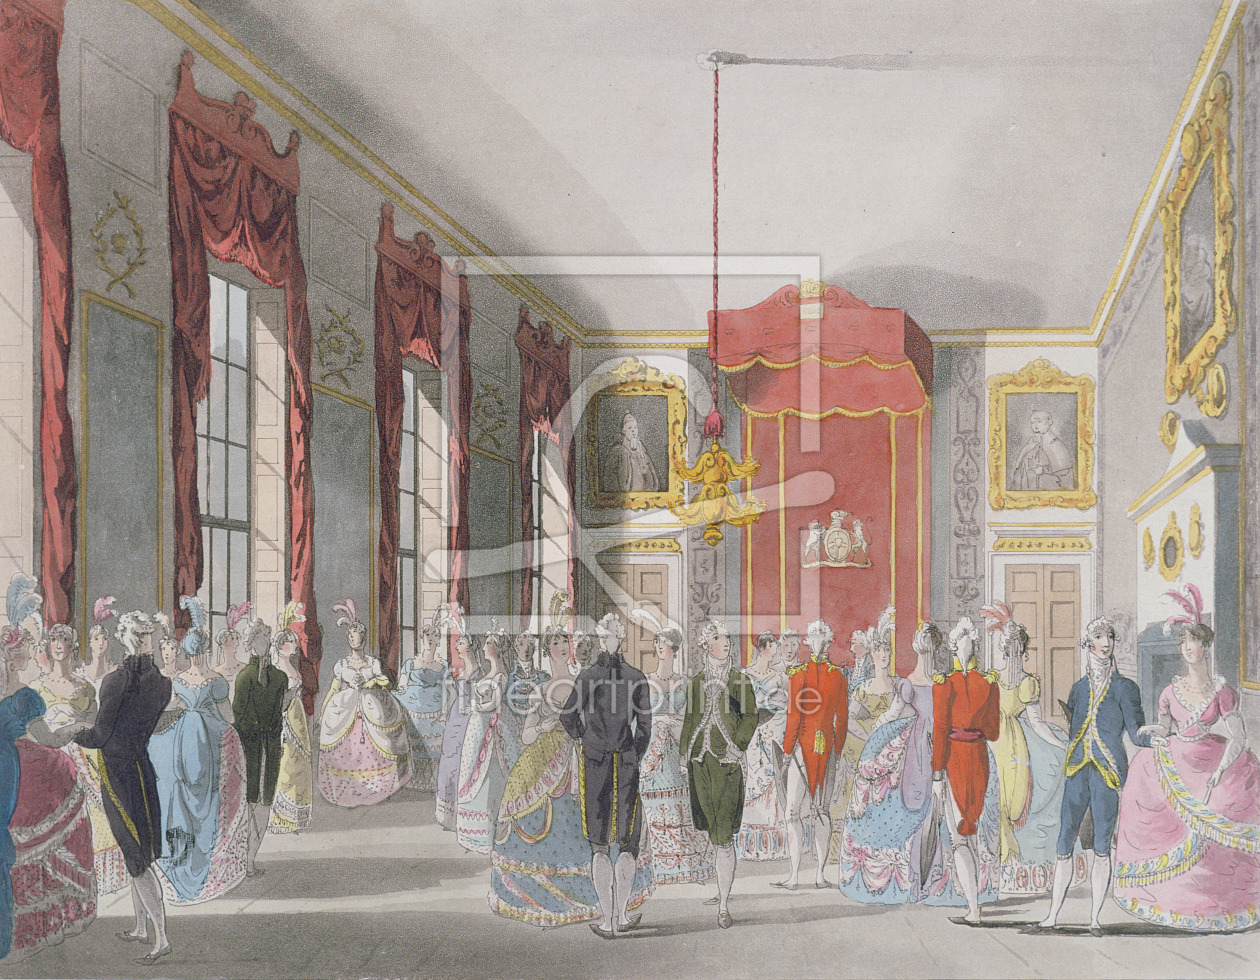 Bild-Nr.: 31002629 Drawing Room, St. James's, engraved by John Bluck published by Ackermann's 'Repo erstellt von Rowlandson, Thomas